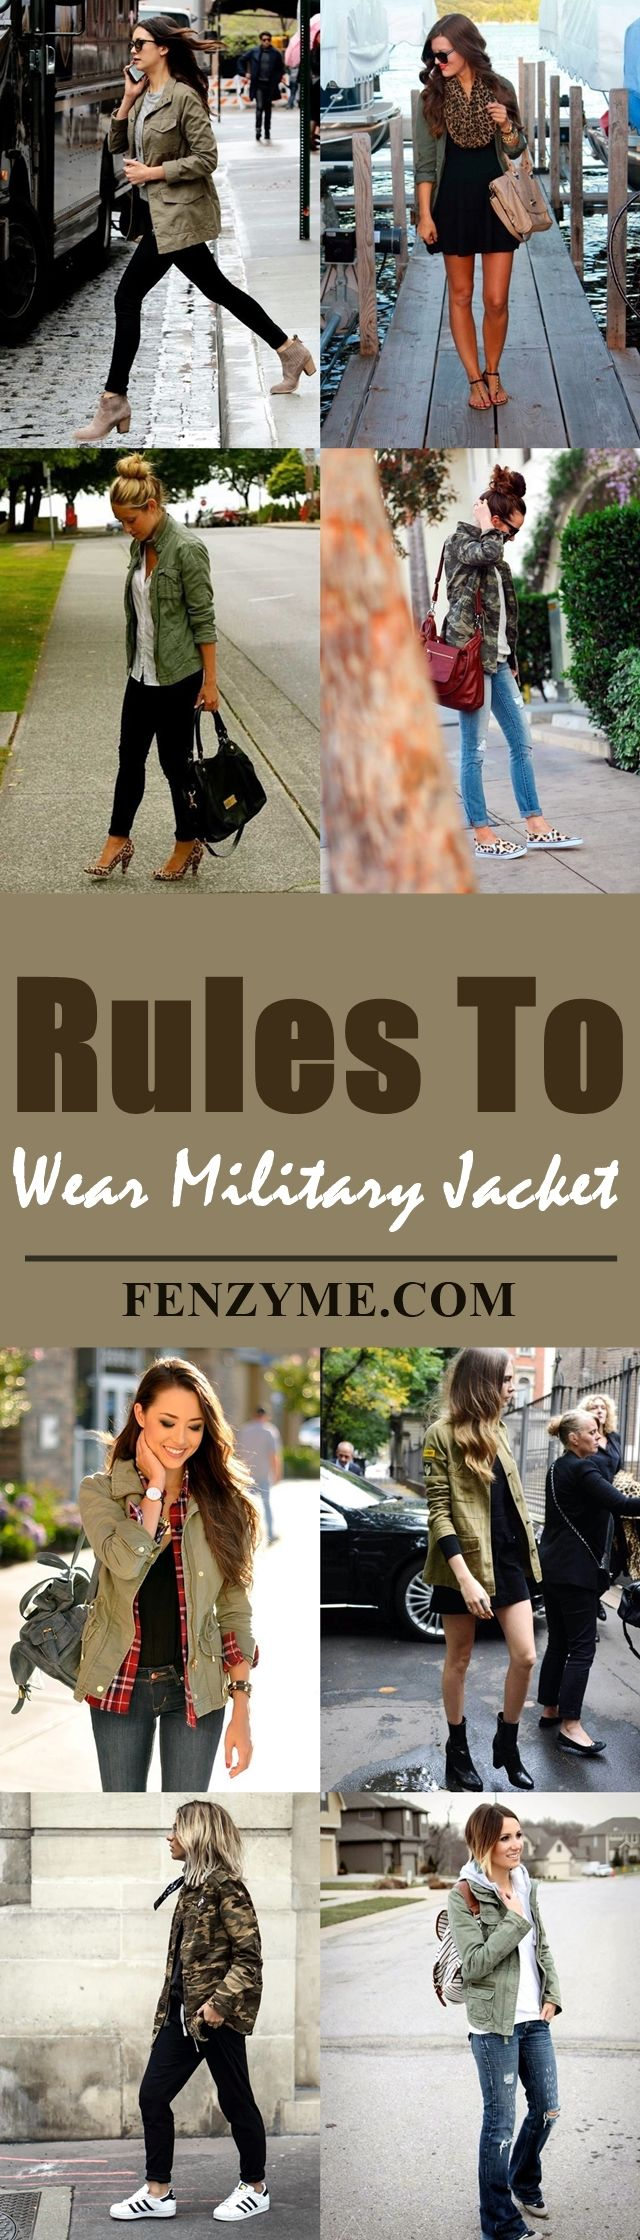 8 Ultra-Modern Rules to Wear Military Jacket | Military Jacket Outfits | Fenzyme.com